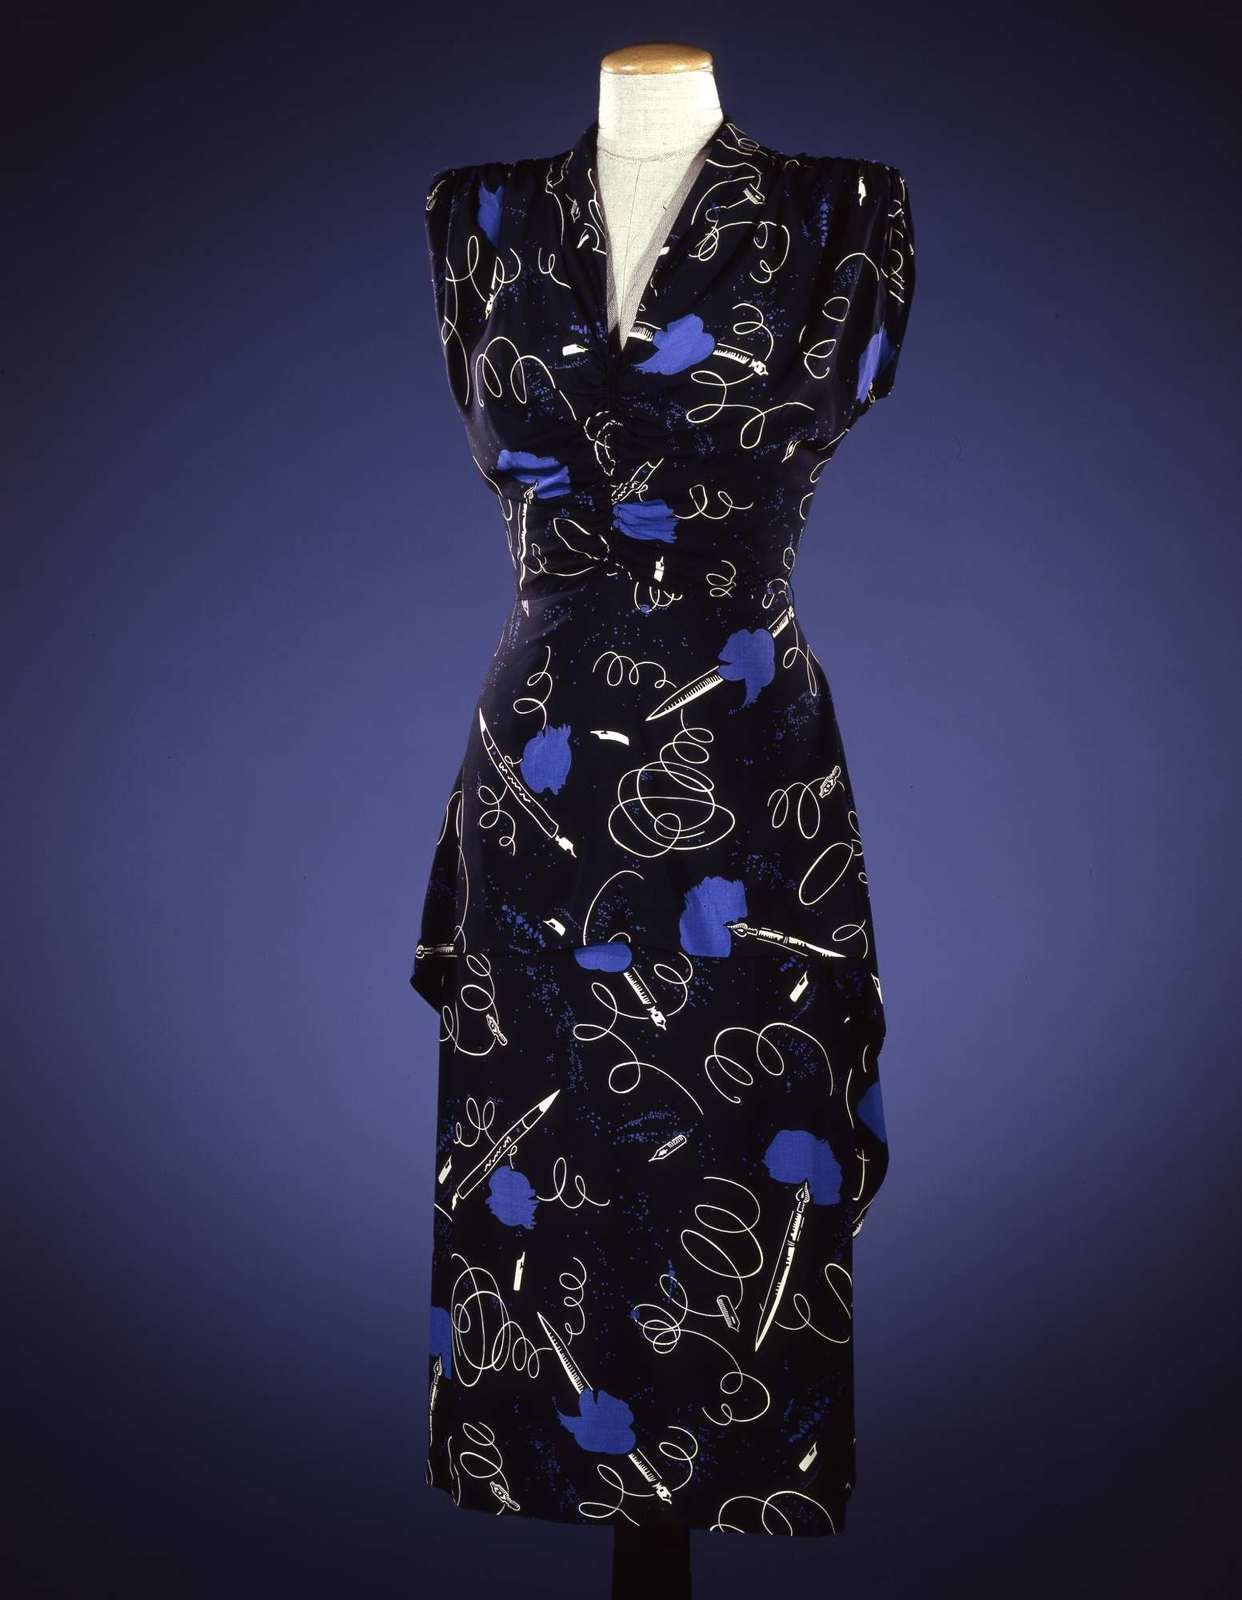 Printed dress, ca. 1946, Elsa Schiaparelli, Galleria del Costume di Palazzo Pitti, In Copyright